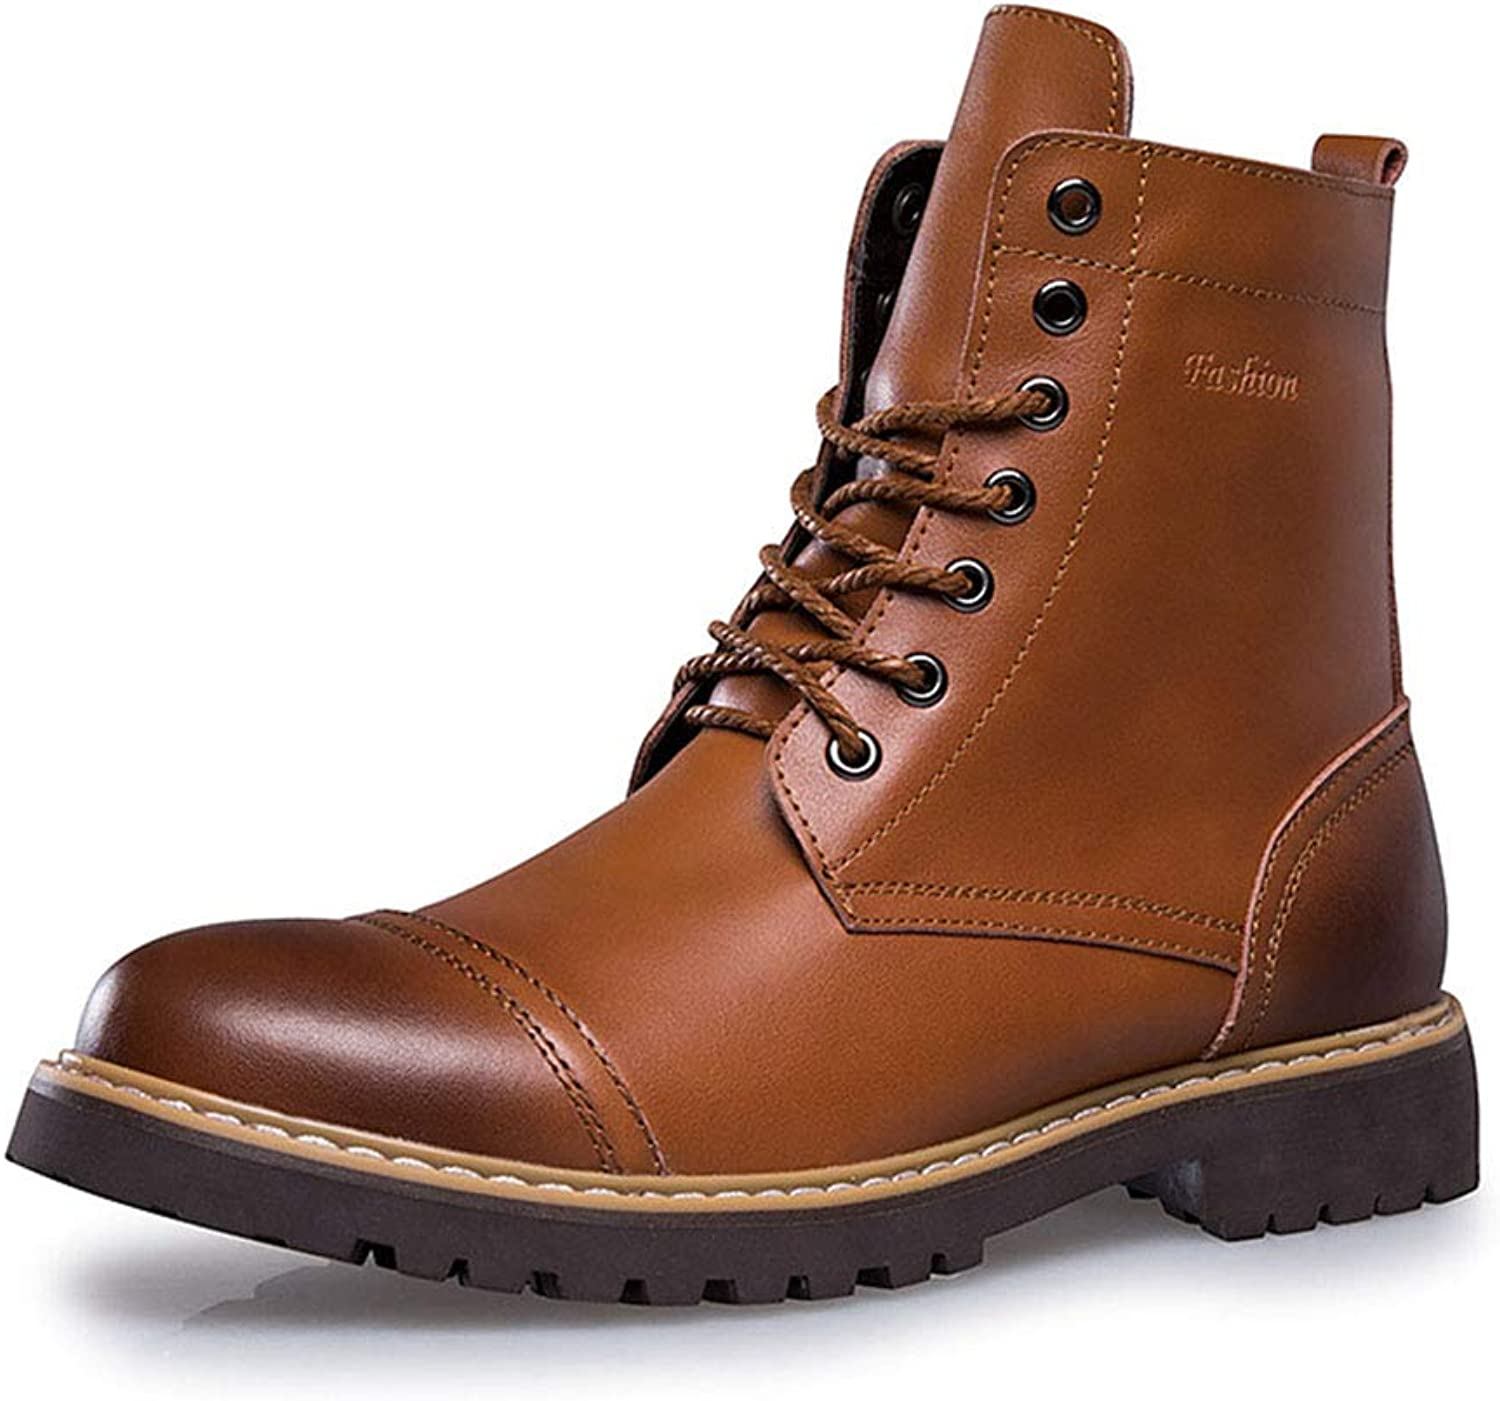 Unisex Adults' Martin Ankle Boots Classic Lace Up Genuine Leather Walking shoes Large Men's shoes